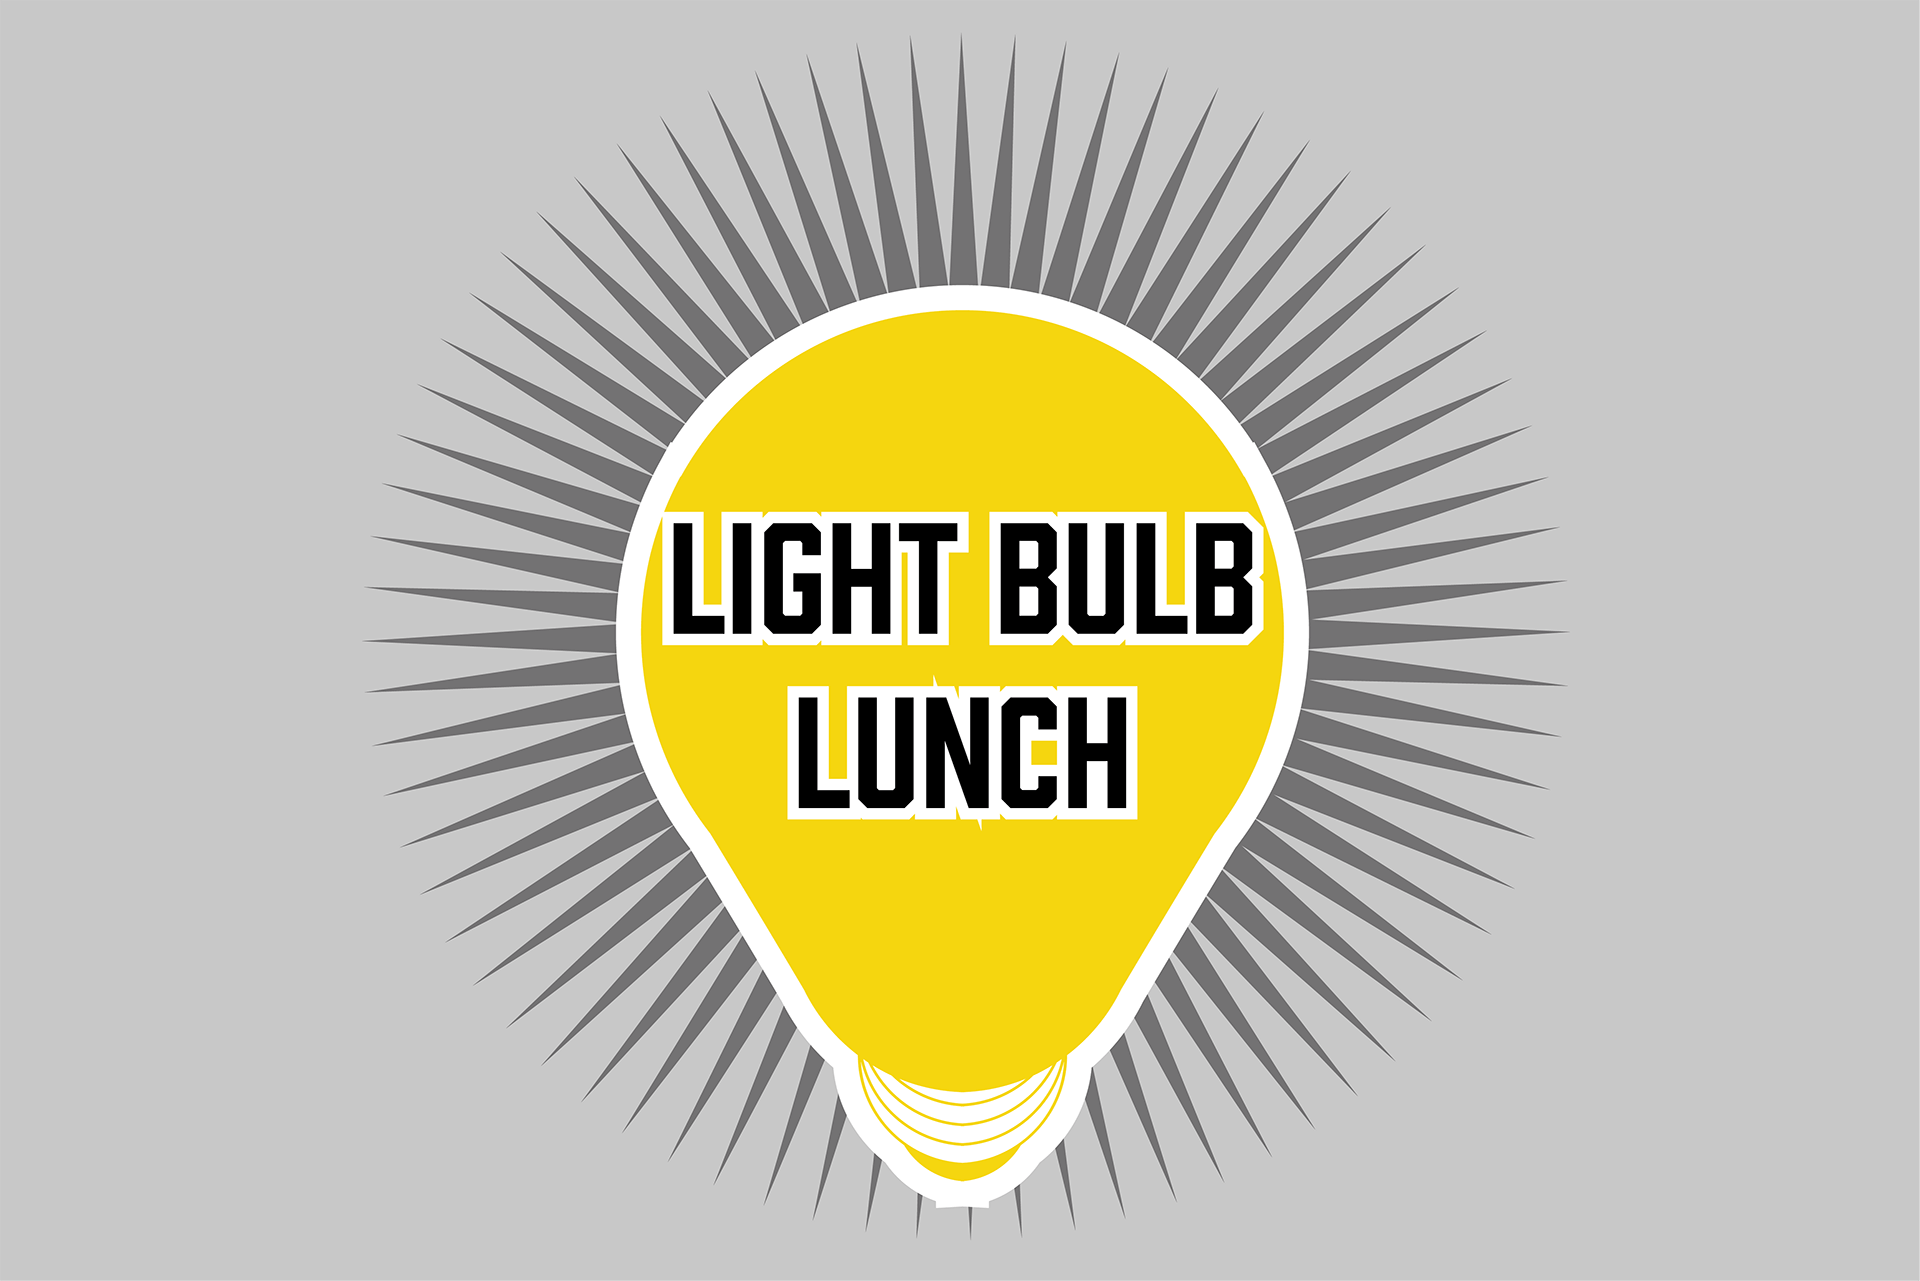 Light Bulb Lunch is a place where new ideas can shine! The third Thursday of every month at 11:30 A.M.